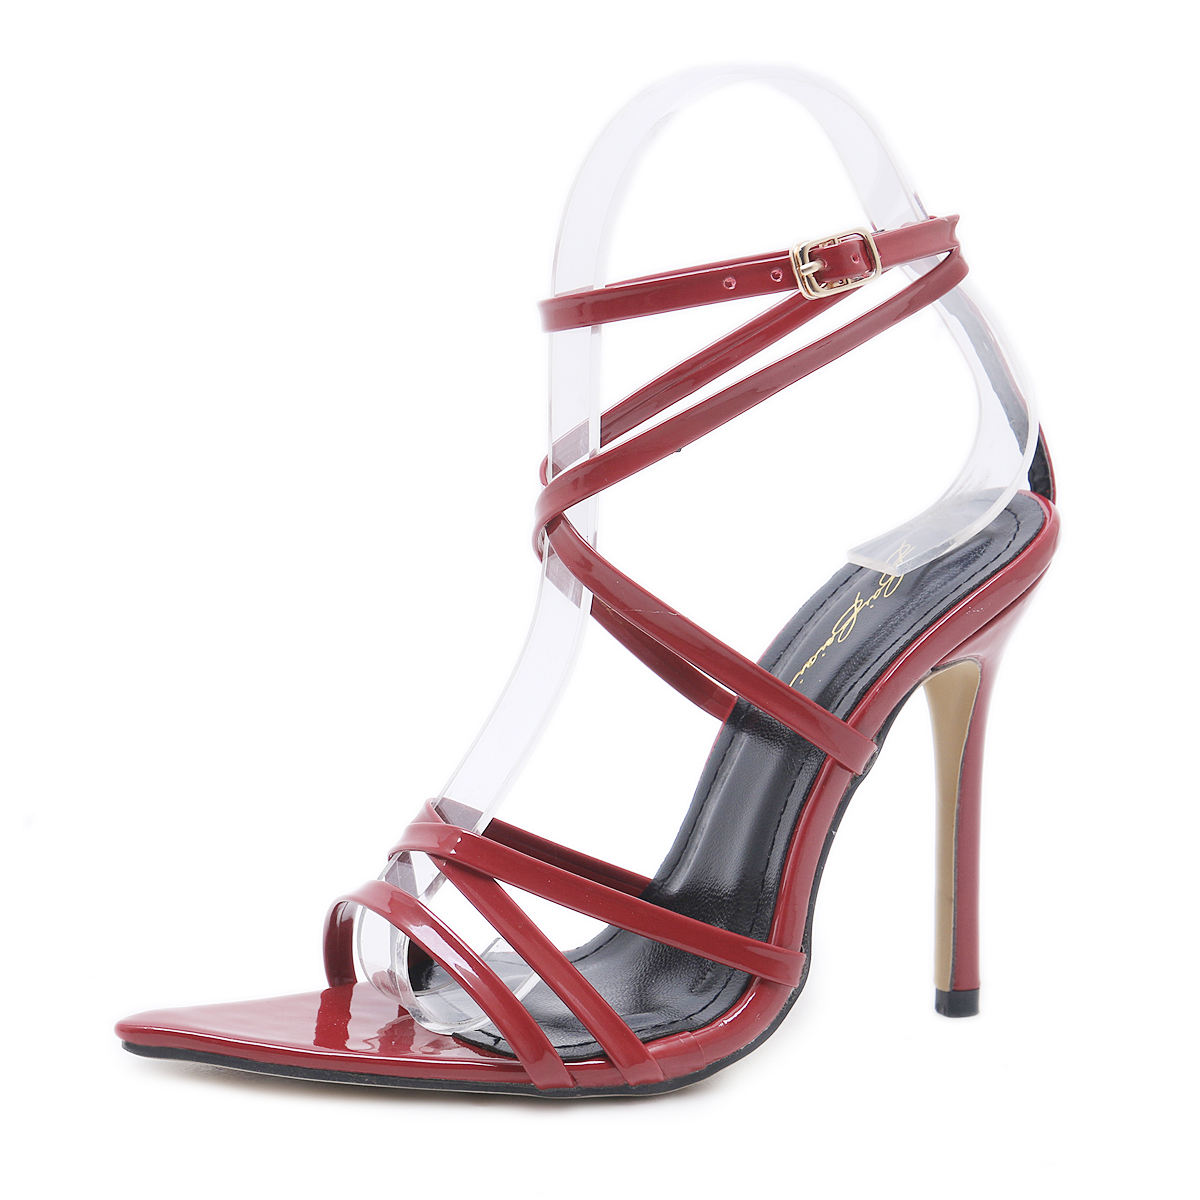 2021 Summer Vogue Sandales A Talons Colorful Trendy Sexy Ladies Pointed Toe High Heels for Women Stiletto Shoes